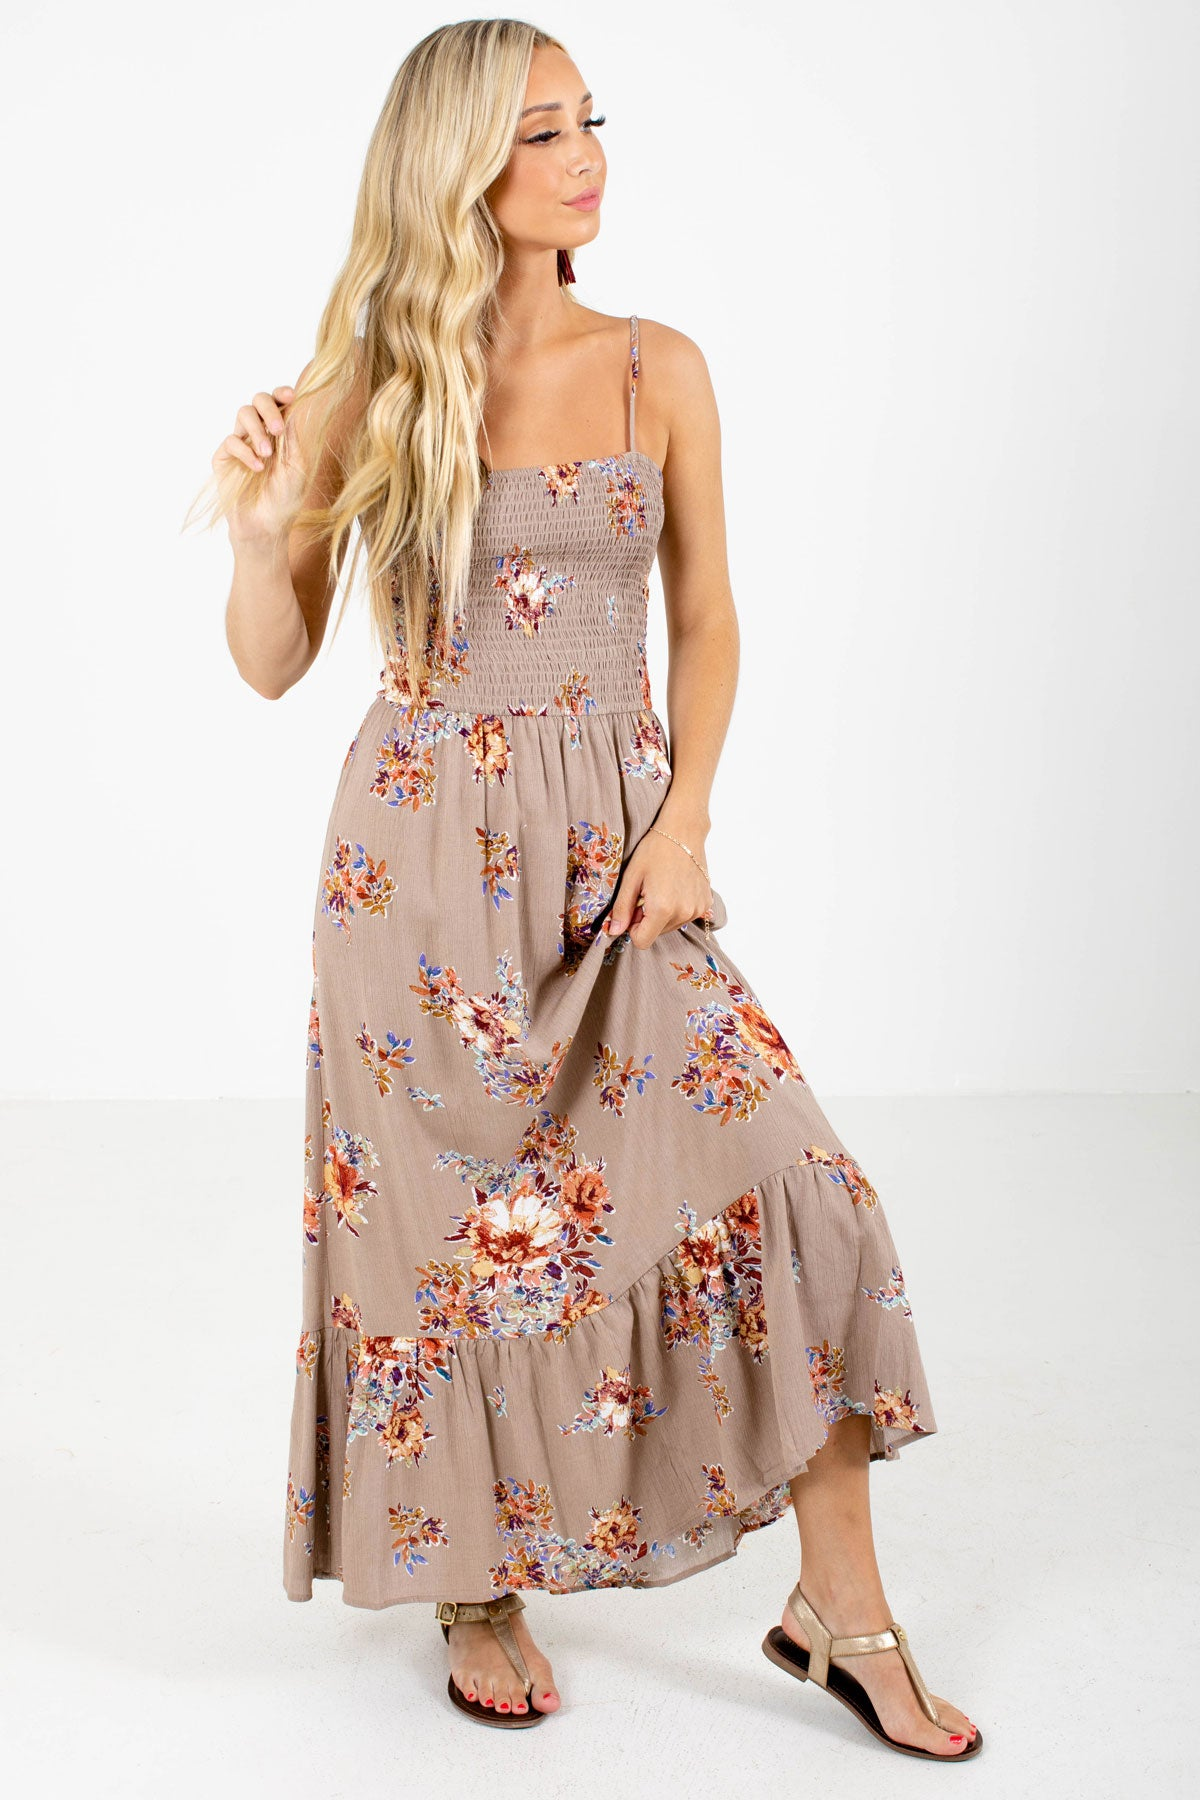 Brown Multicolored Floral Patterned Boutique Maxi Dresses for Women